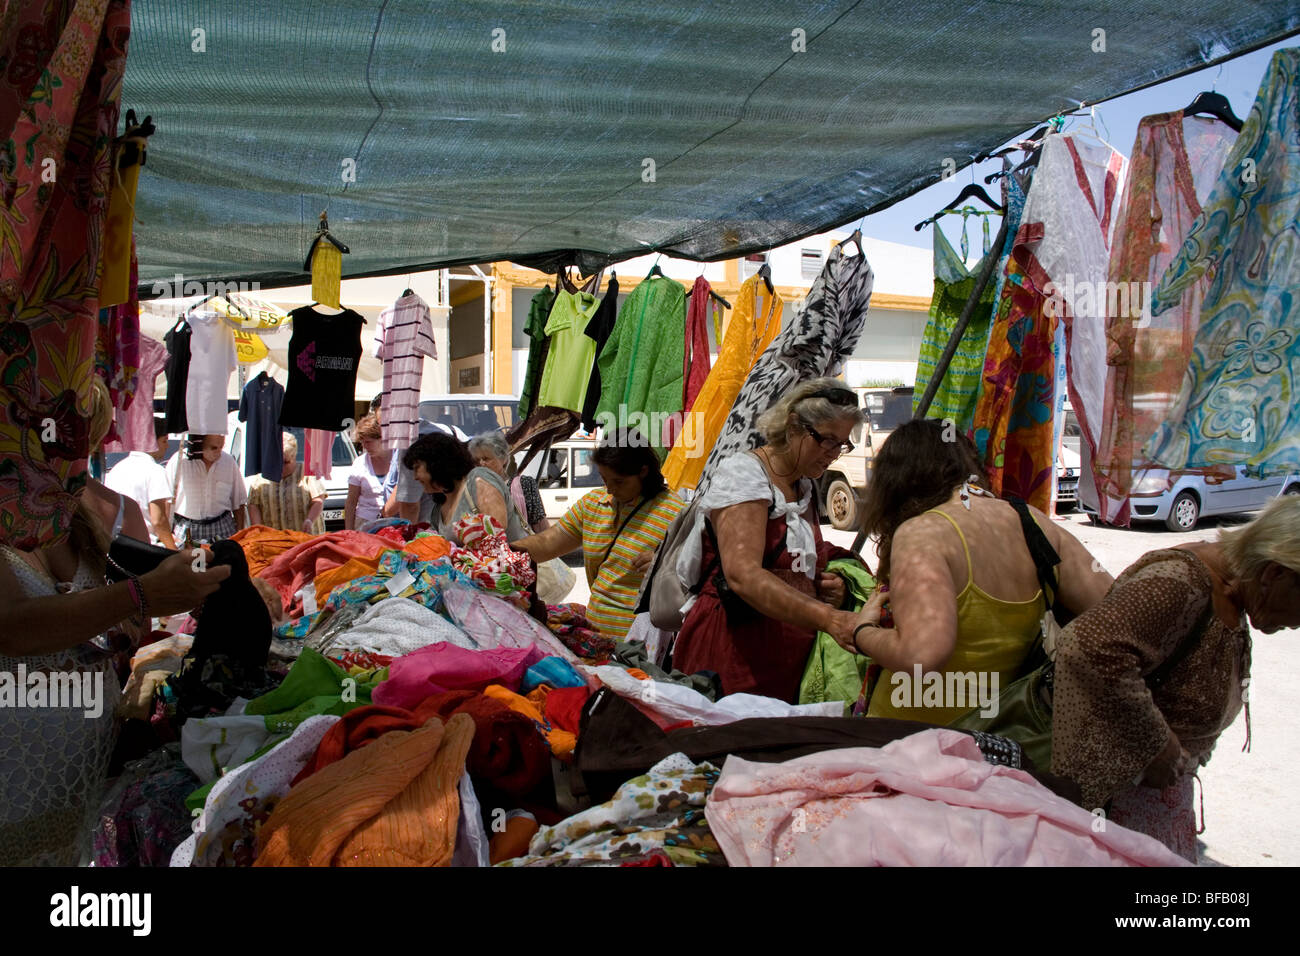 Sofa Cloth Online Shopping India Women Buying Indian Clothes On Open Air Market Stall In